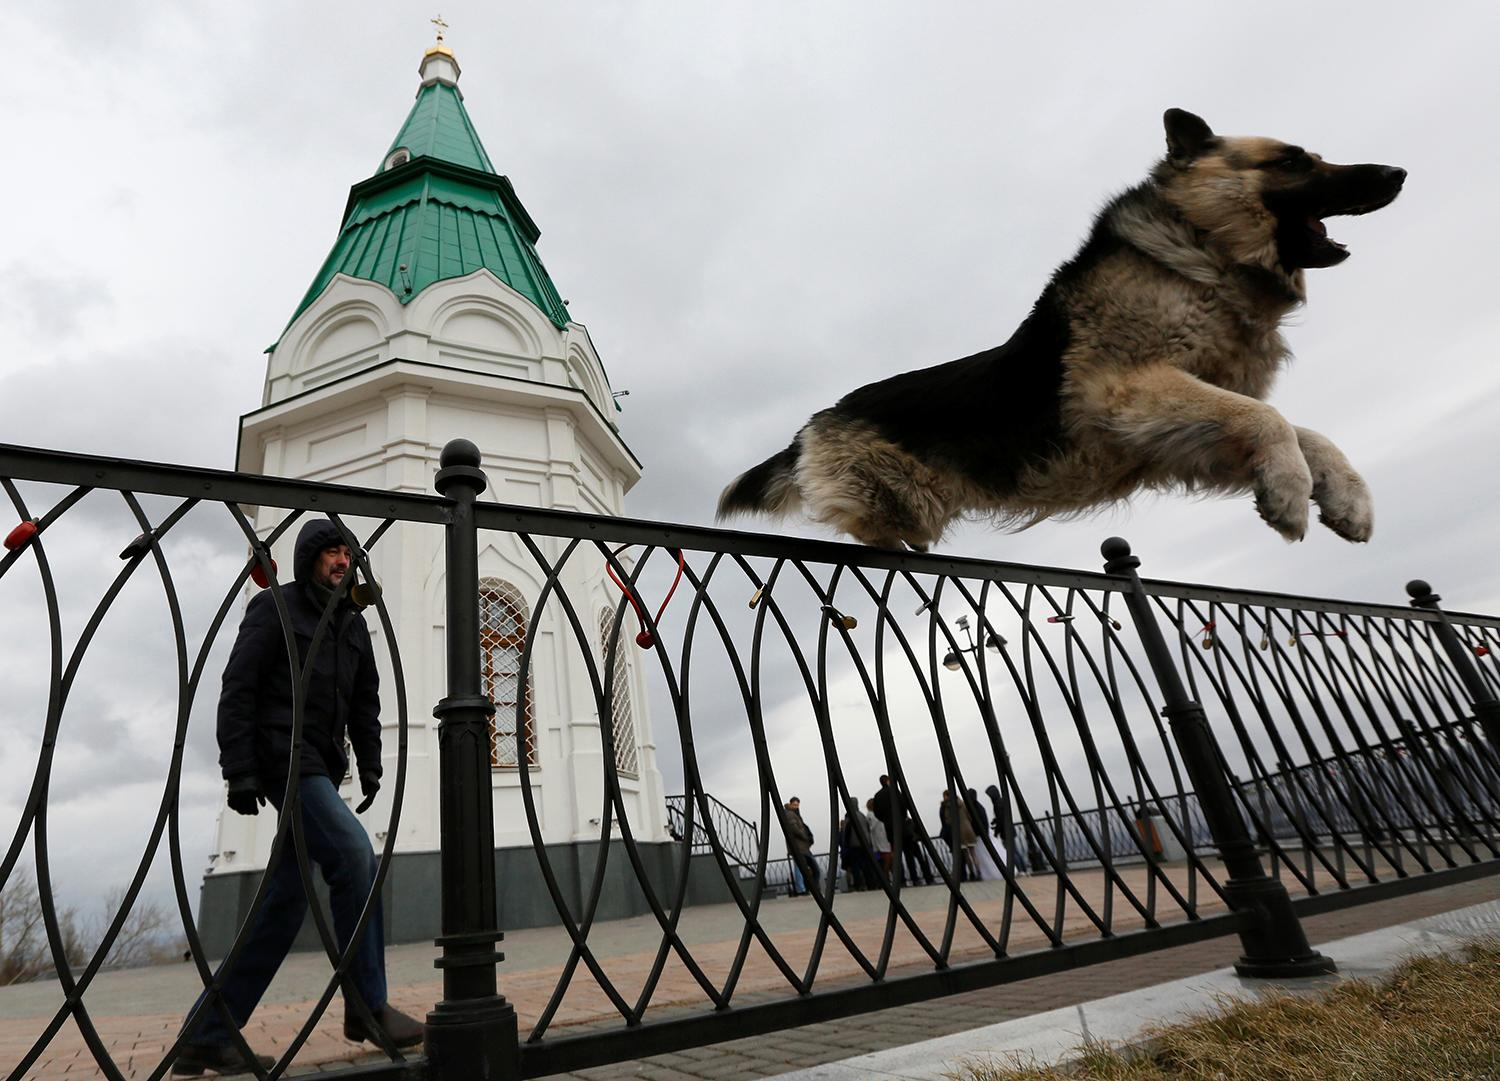 <p>A trainer looks at a German Shepherd jumping over a fence in front of the Orthodox Paraskeva Pyatnitsa Chapel in Krasnoyarsk, Siberia, Russia April 7, 2017. (Photo: Ilya Naymushin/Reuters) </p>